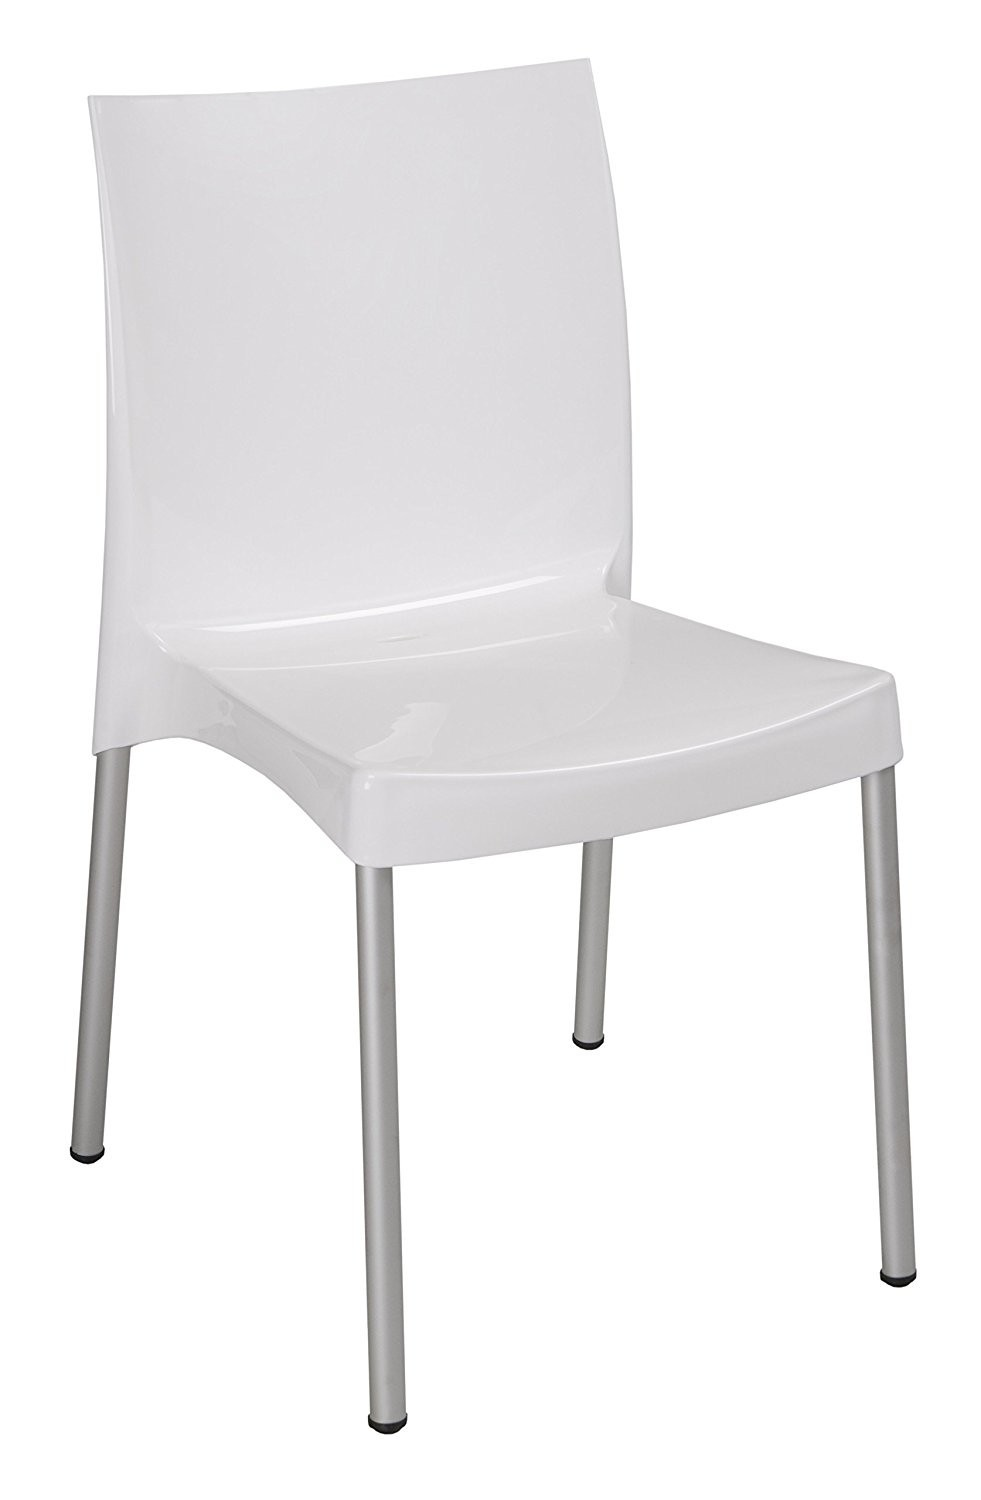 Chair NICAL, Aluminum, Polypropylene White Luster